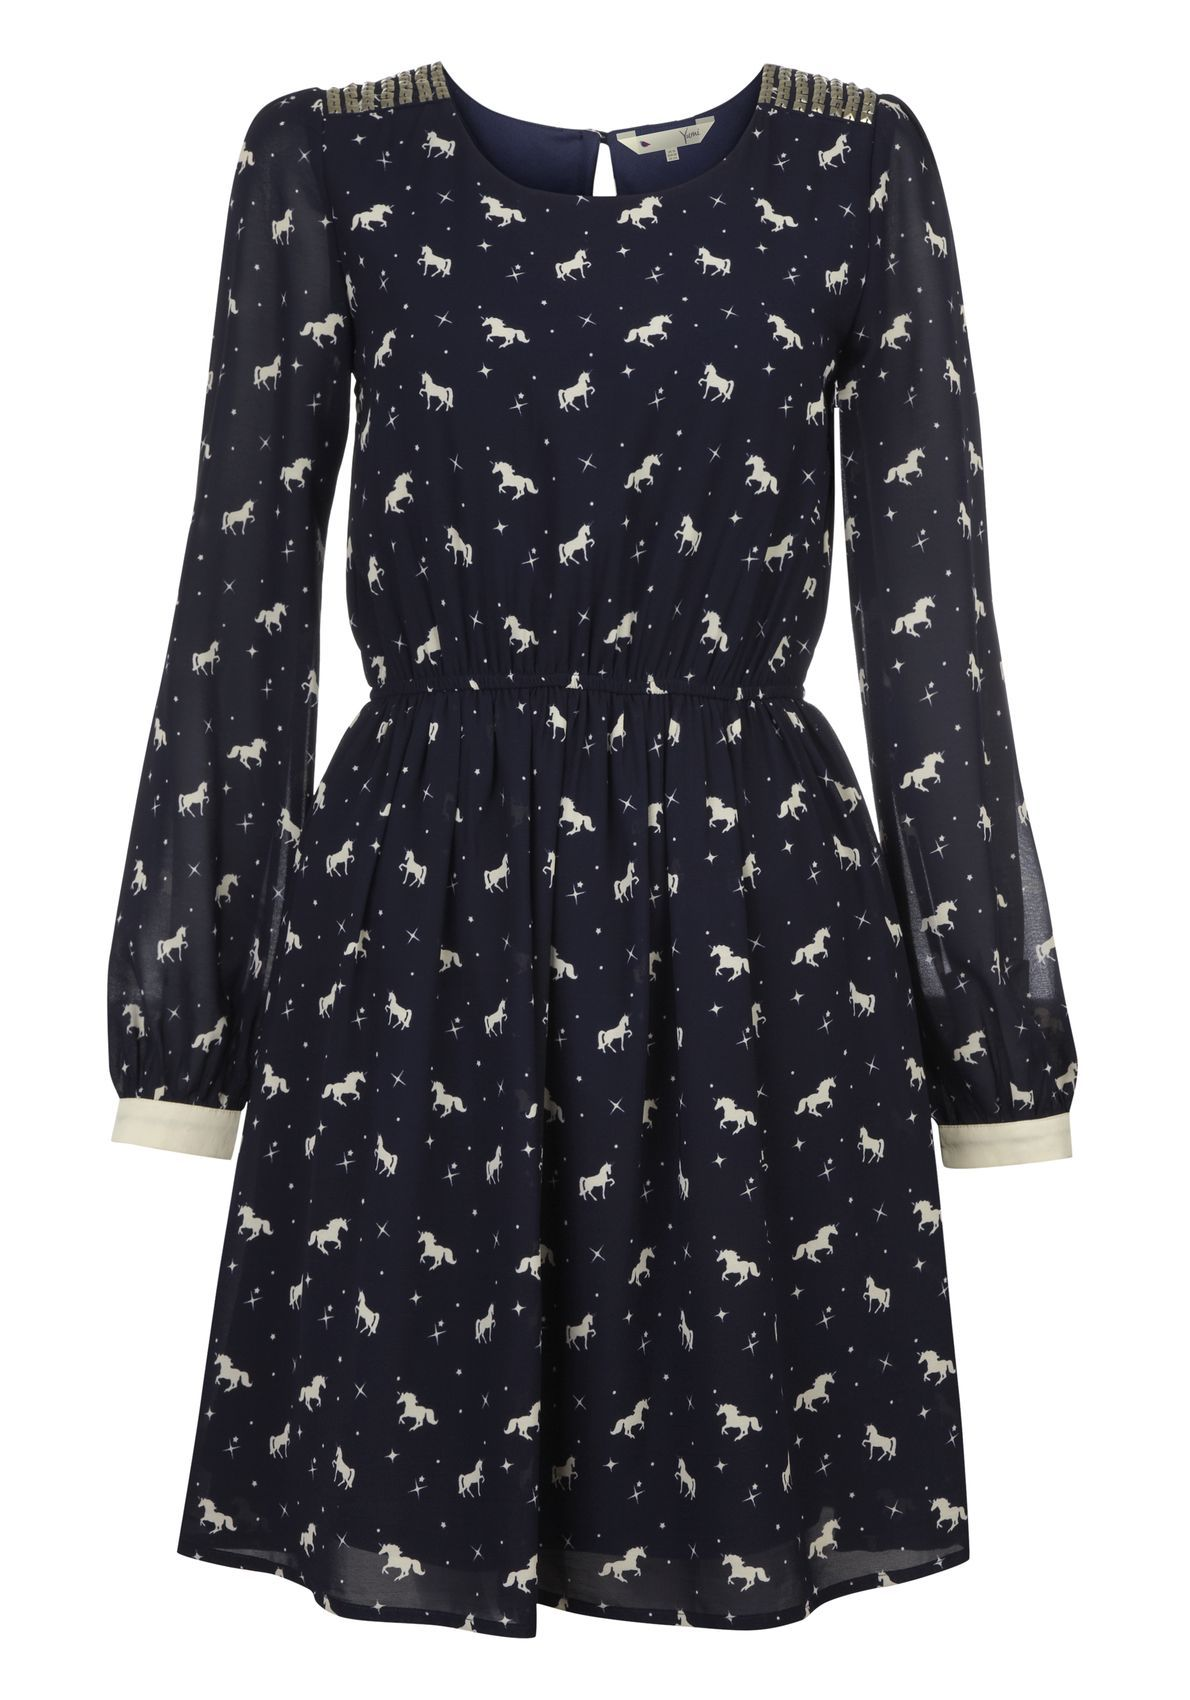 1a81220dff3b Unicorn Print Dress- Yumi London. UK10, equivalent to a US 2-4. NWT. Will  only swap for another dress.